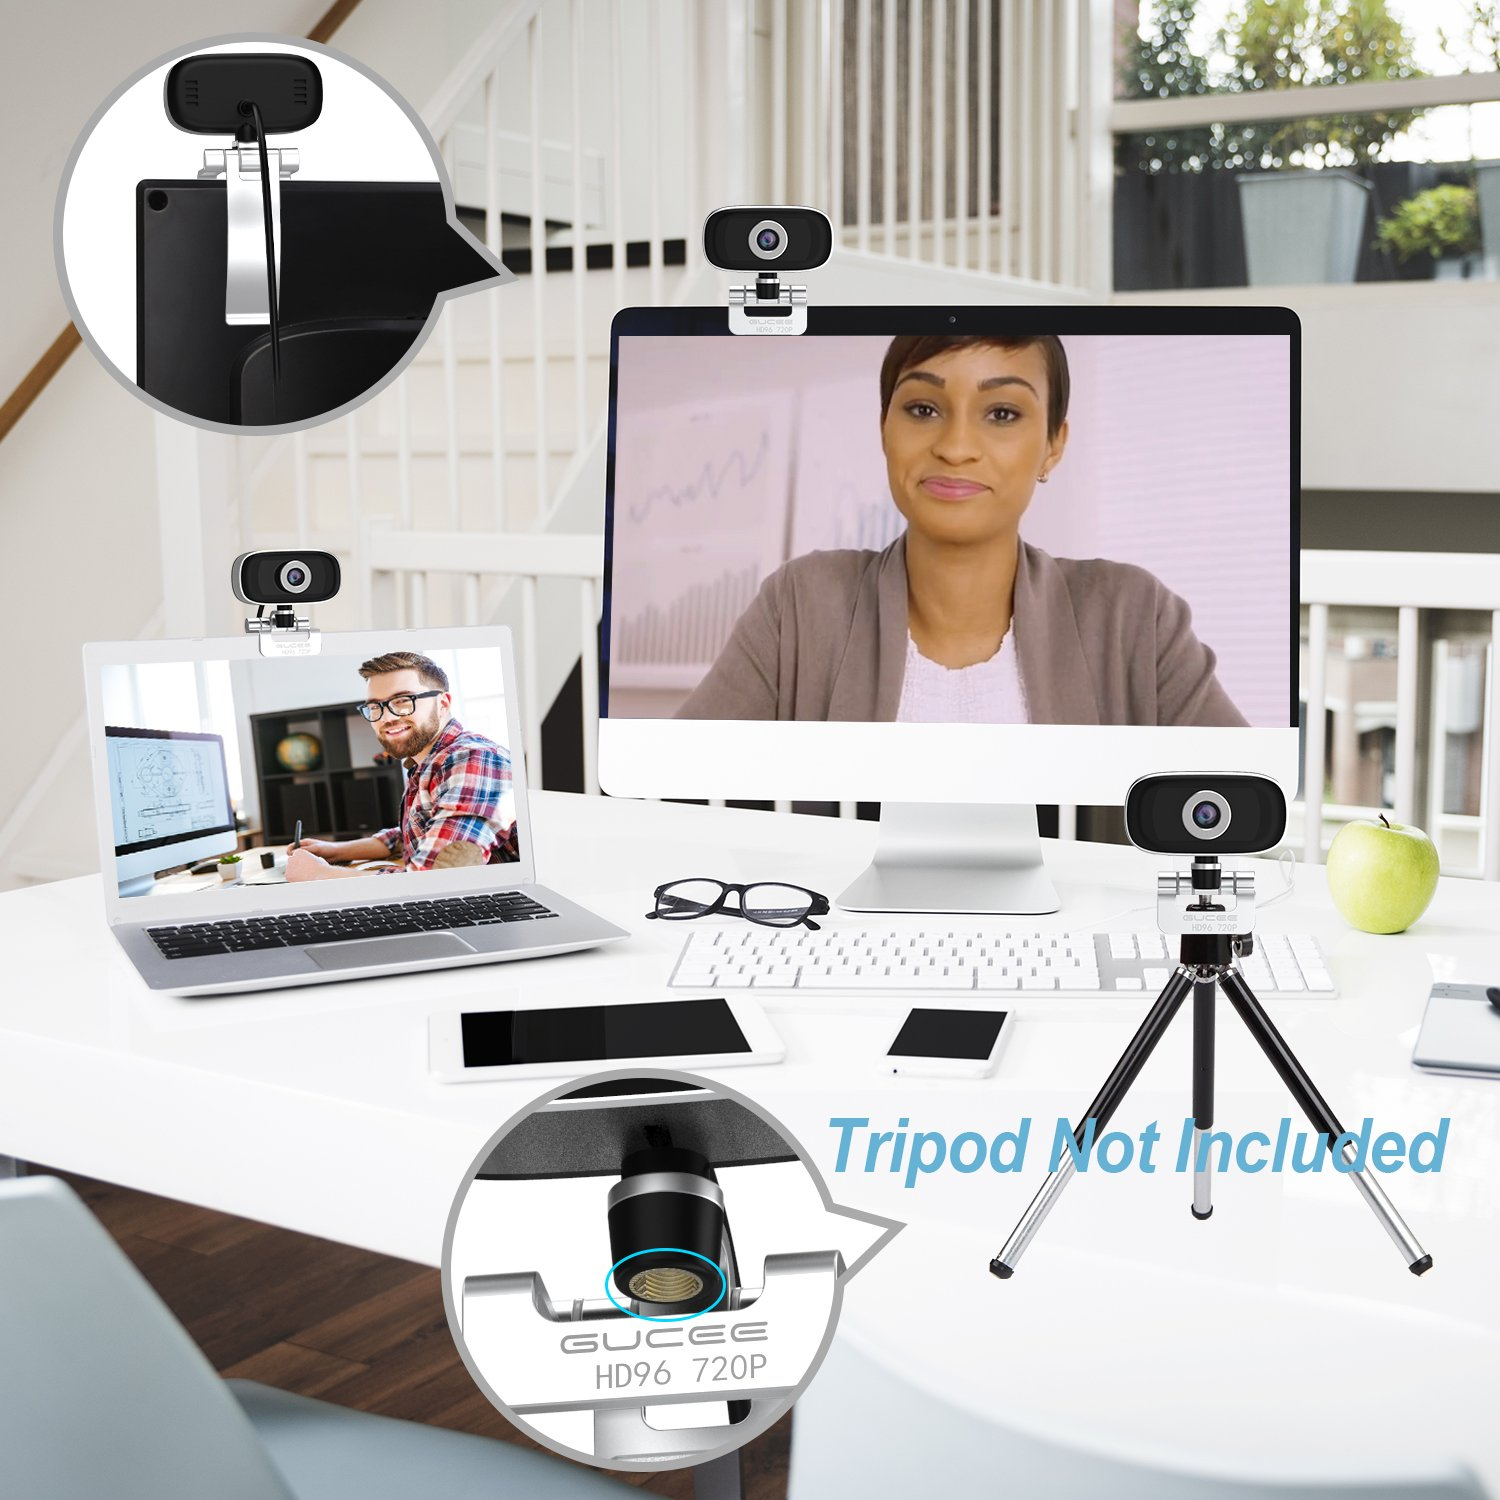 GUCEE HD96 720P HD Webcam with Tripod Ready Base (Tripod Not Included), Web Camera HD Microphone Wide Angle USB Plug and Play, Widescreen Calling Recording for Skype, Win 7 / 8 / 10, Apple Mac OS X by iRush (Image #5)